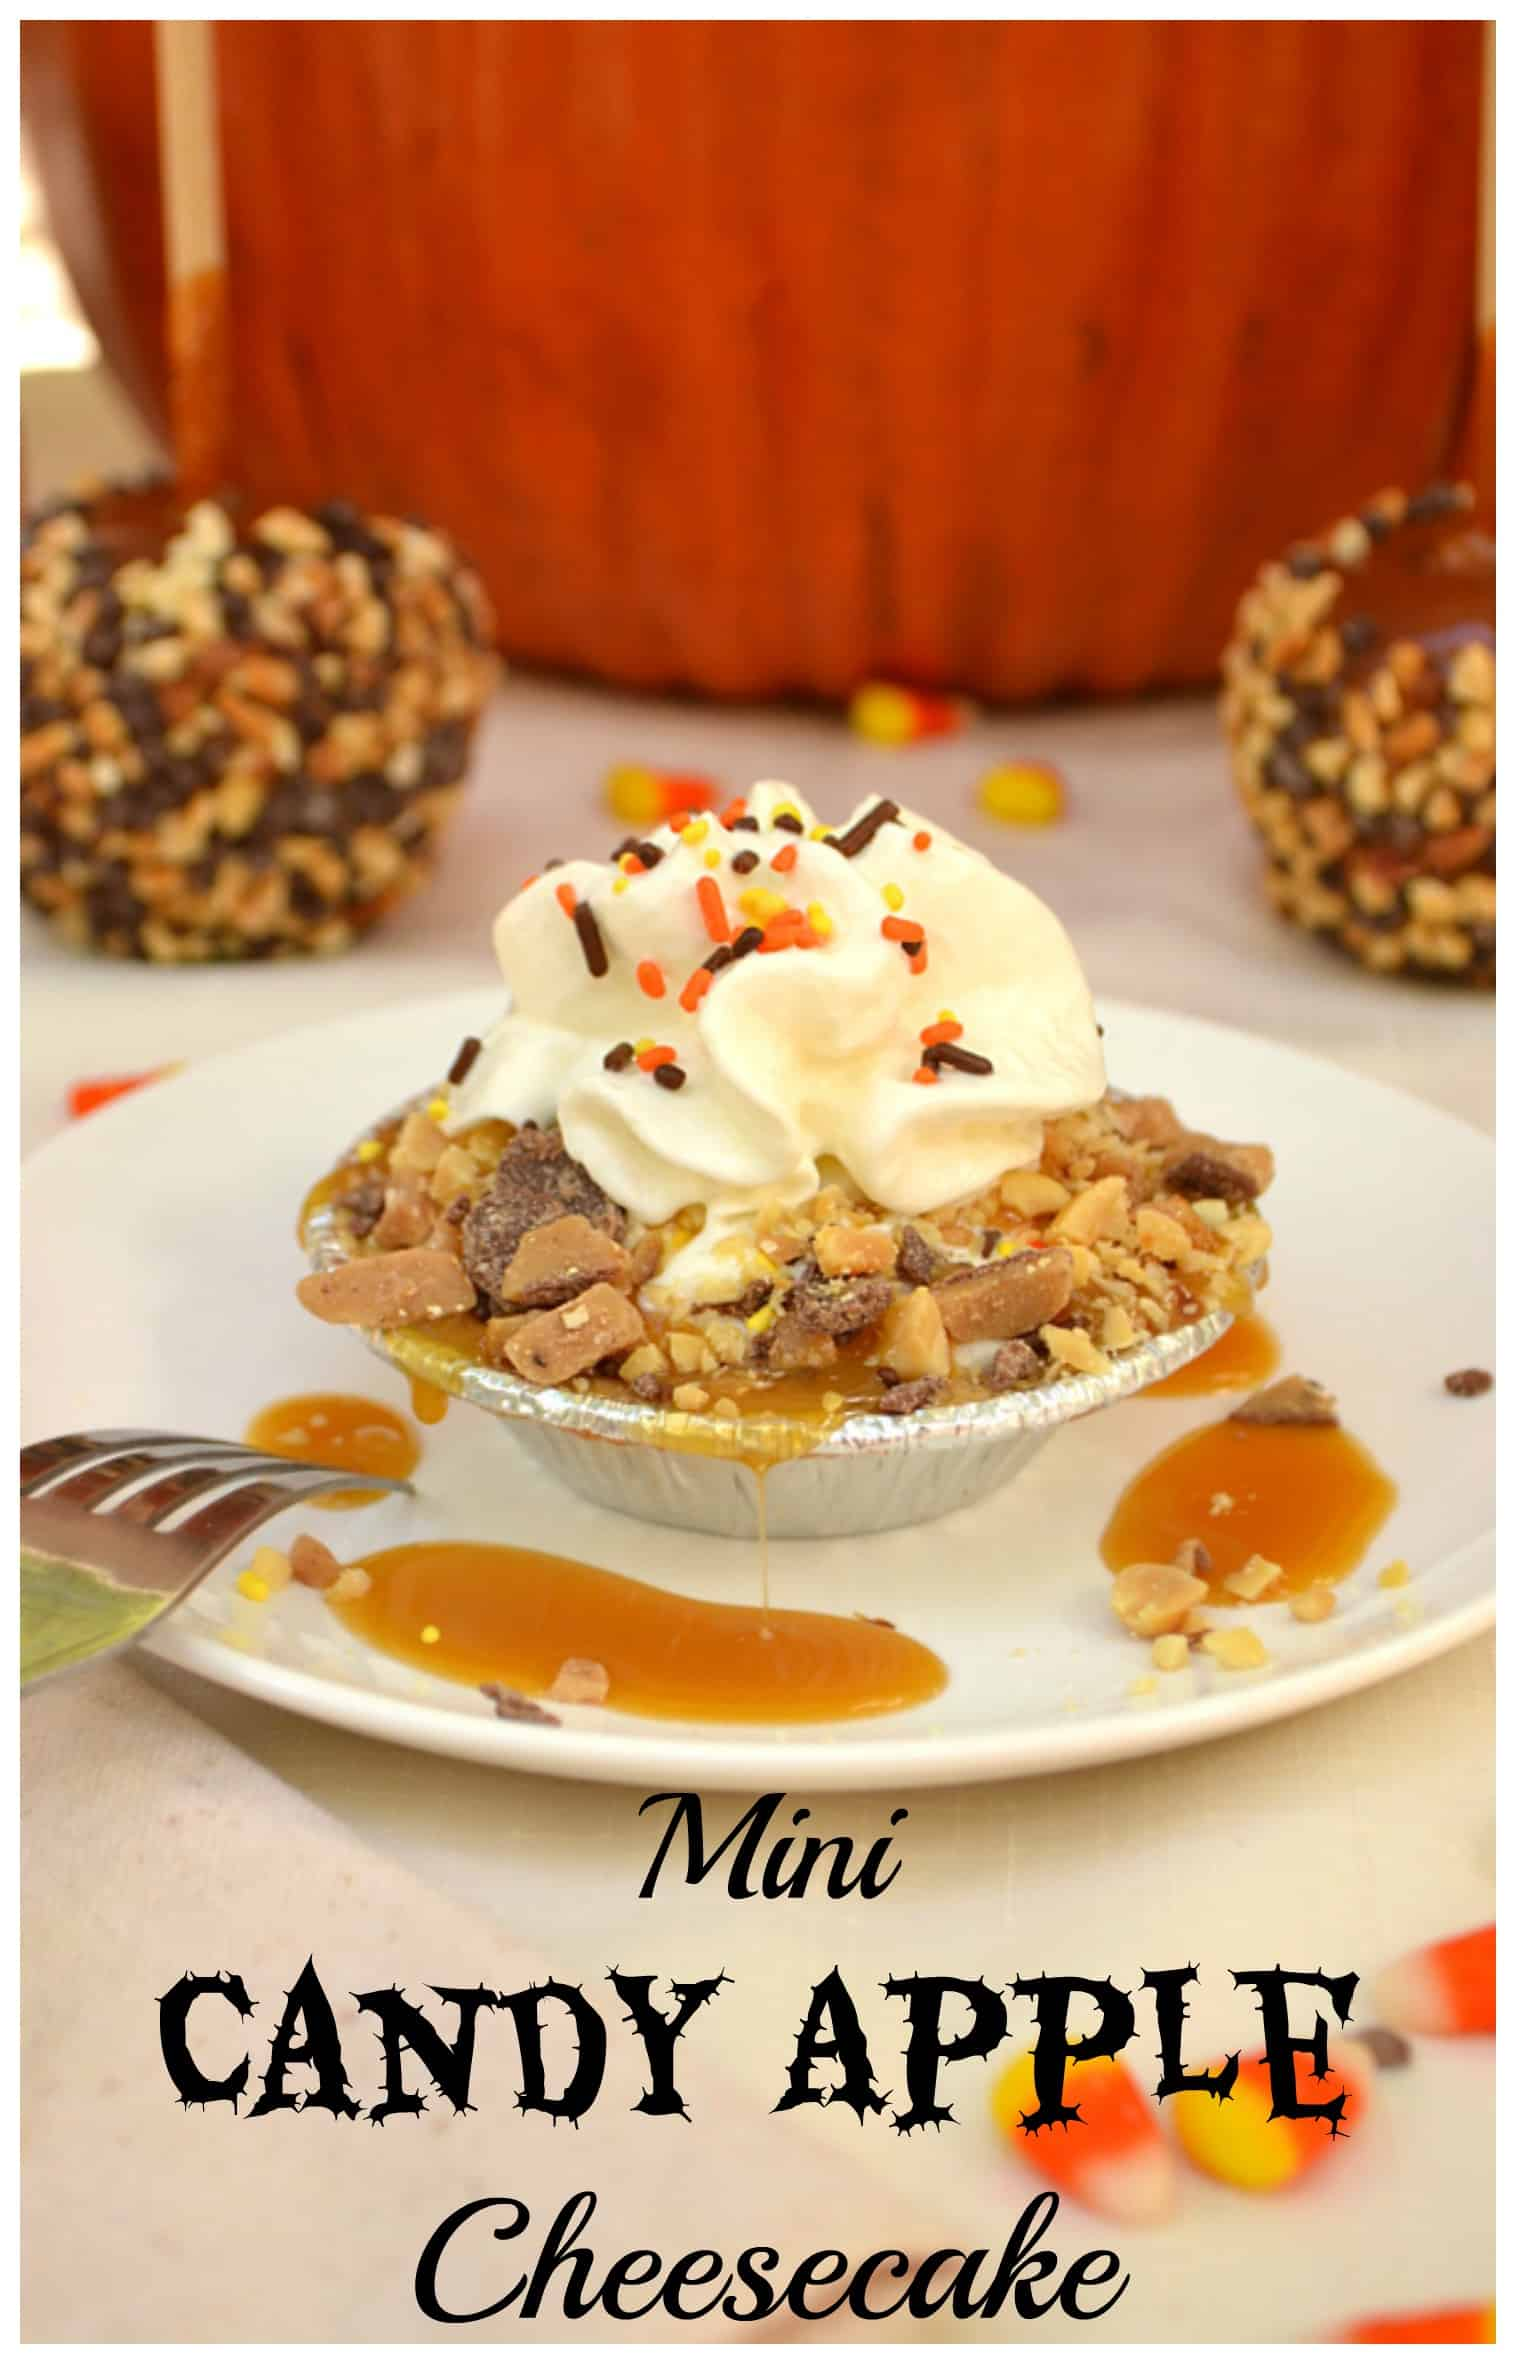 Mini Candy Caramel Apple Cheesecake | No Bake - Quick & Easy | Made with Greek Yogurt | Inspired by Fall Flavors | craftycookingmama.com | #effortlesspies